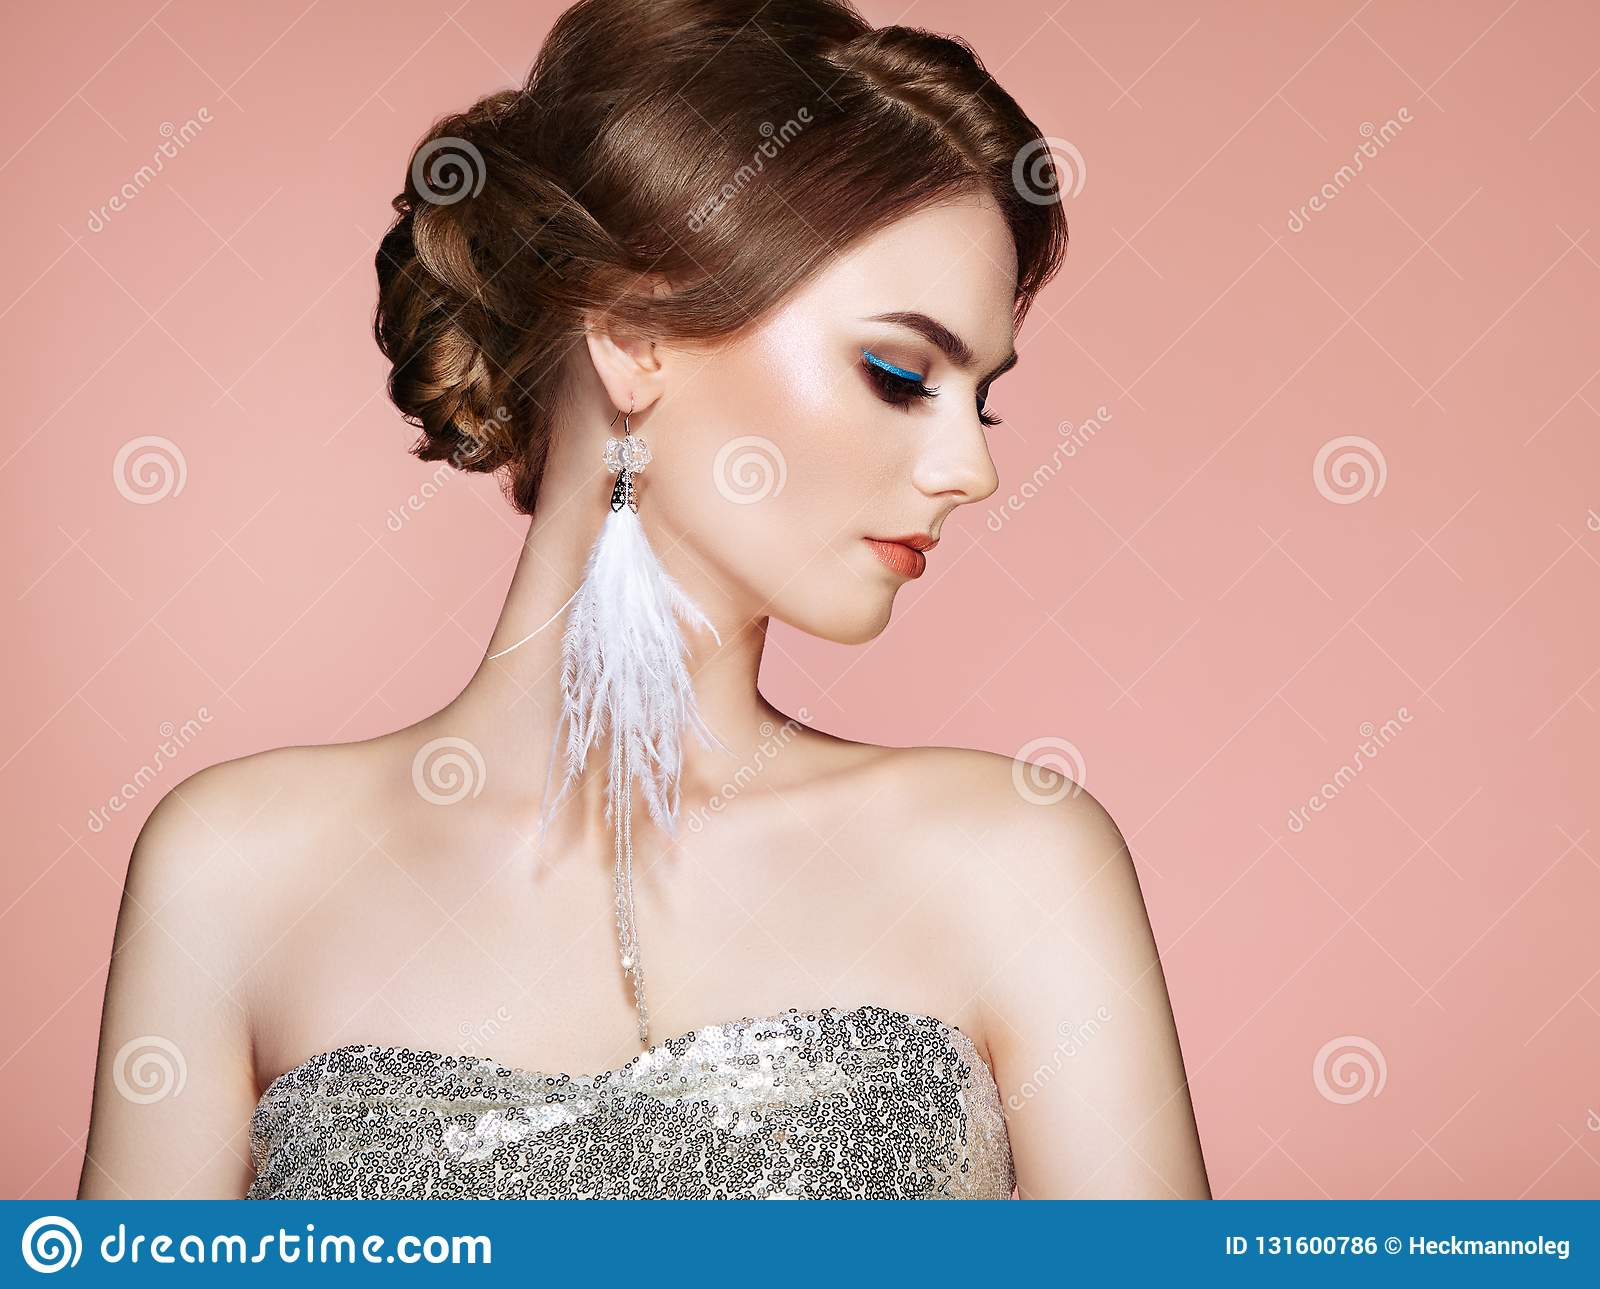 f9817ad7ca2bd Beautiful Woman With Large Earrings Tassels Stock Photo - Image of ...